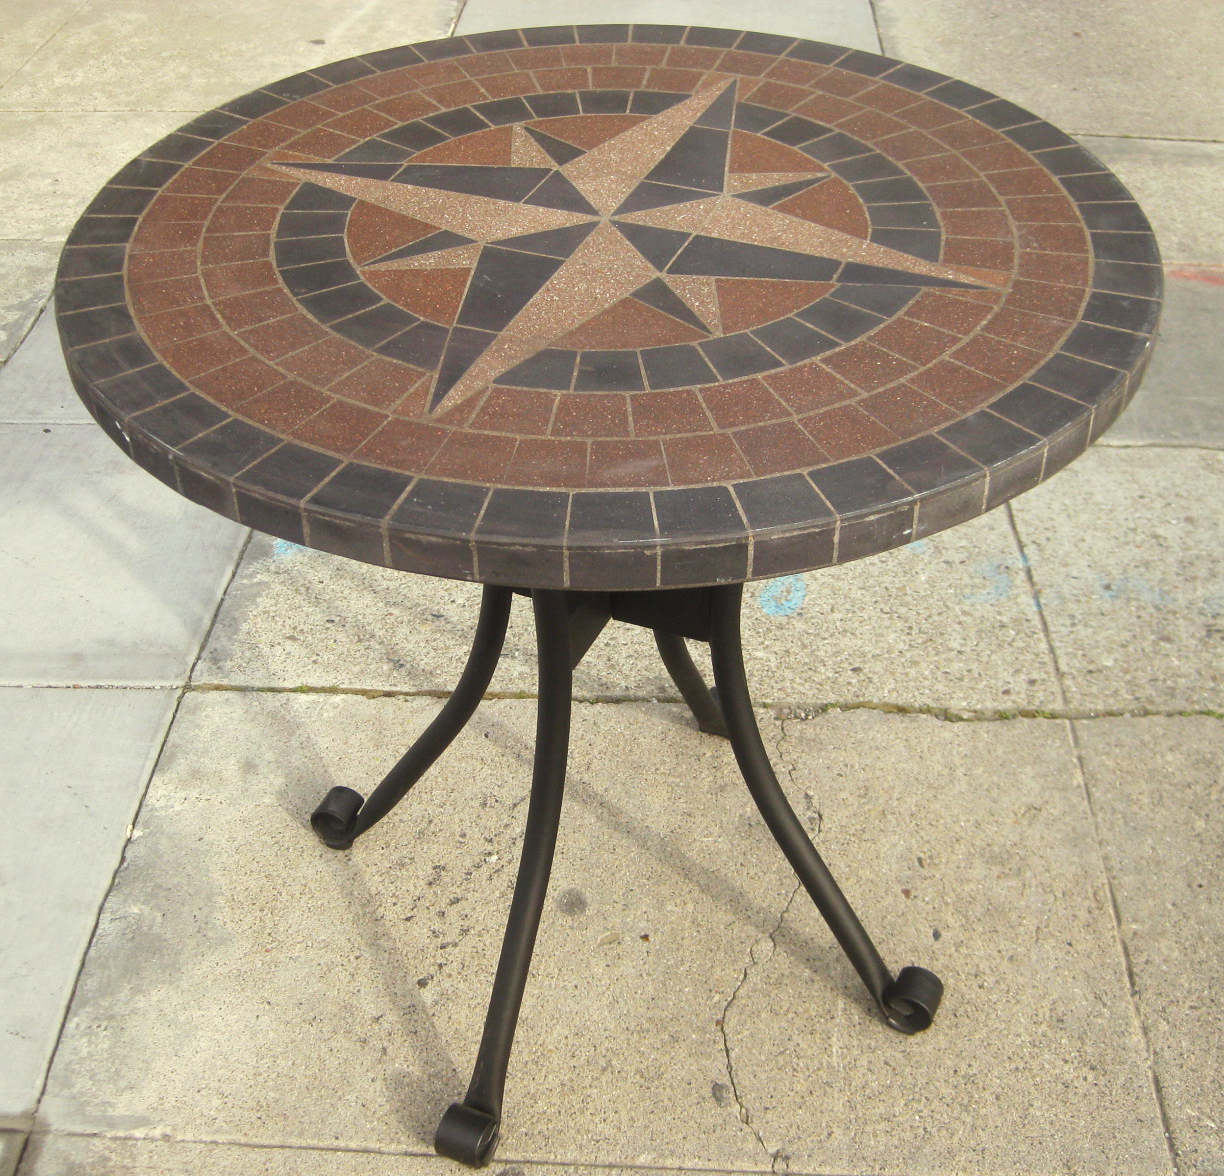 Uhuru Furniture Amp Collectibles Sold Iron And Tile Patio